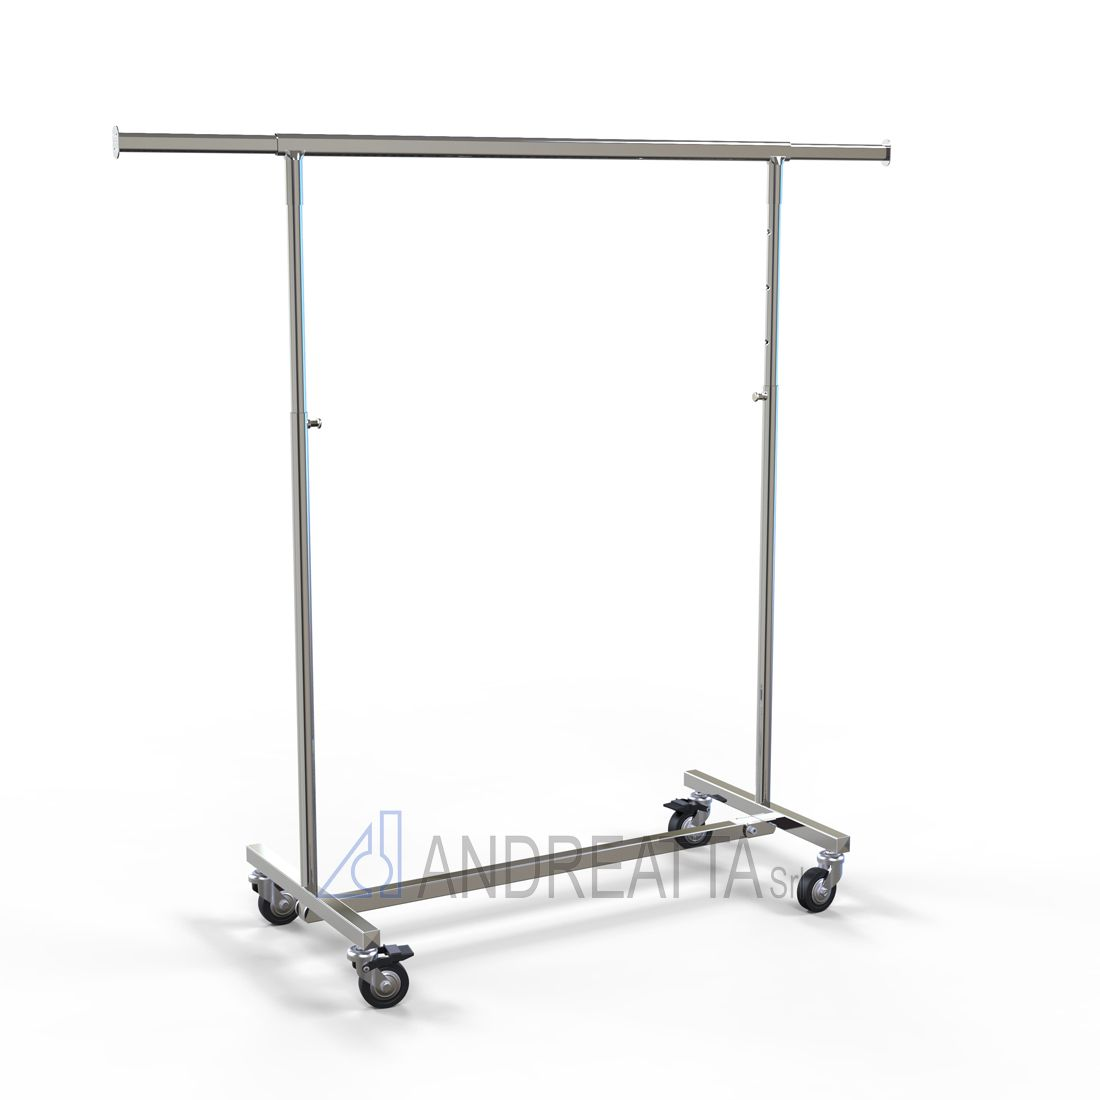 Folding garment rail Adjustable in height